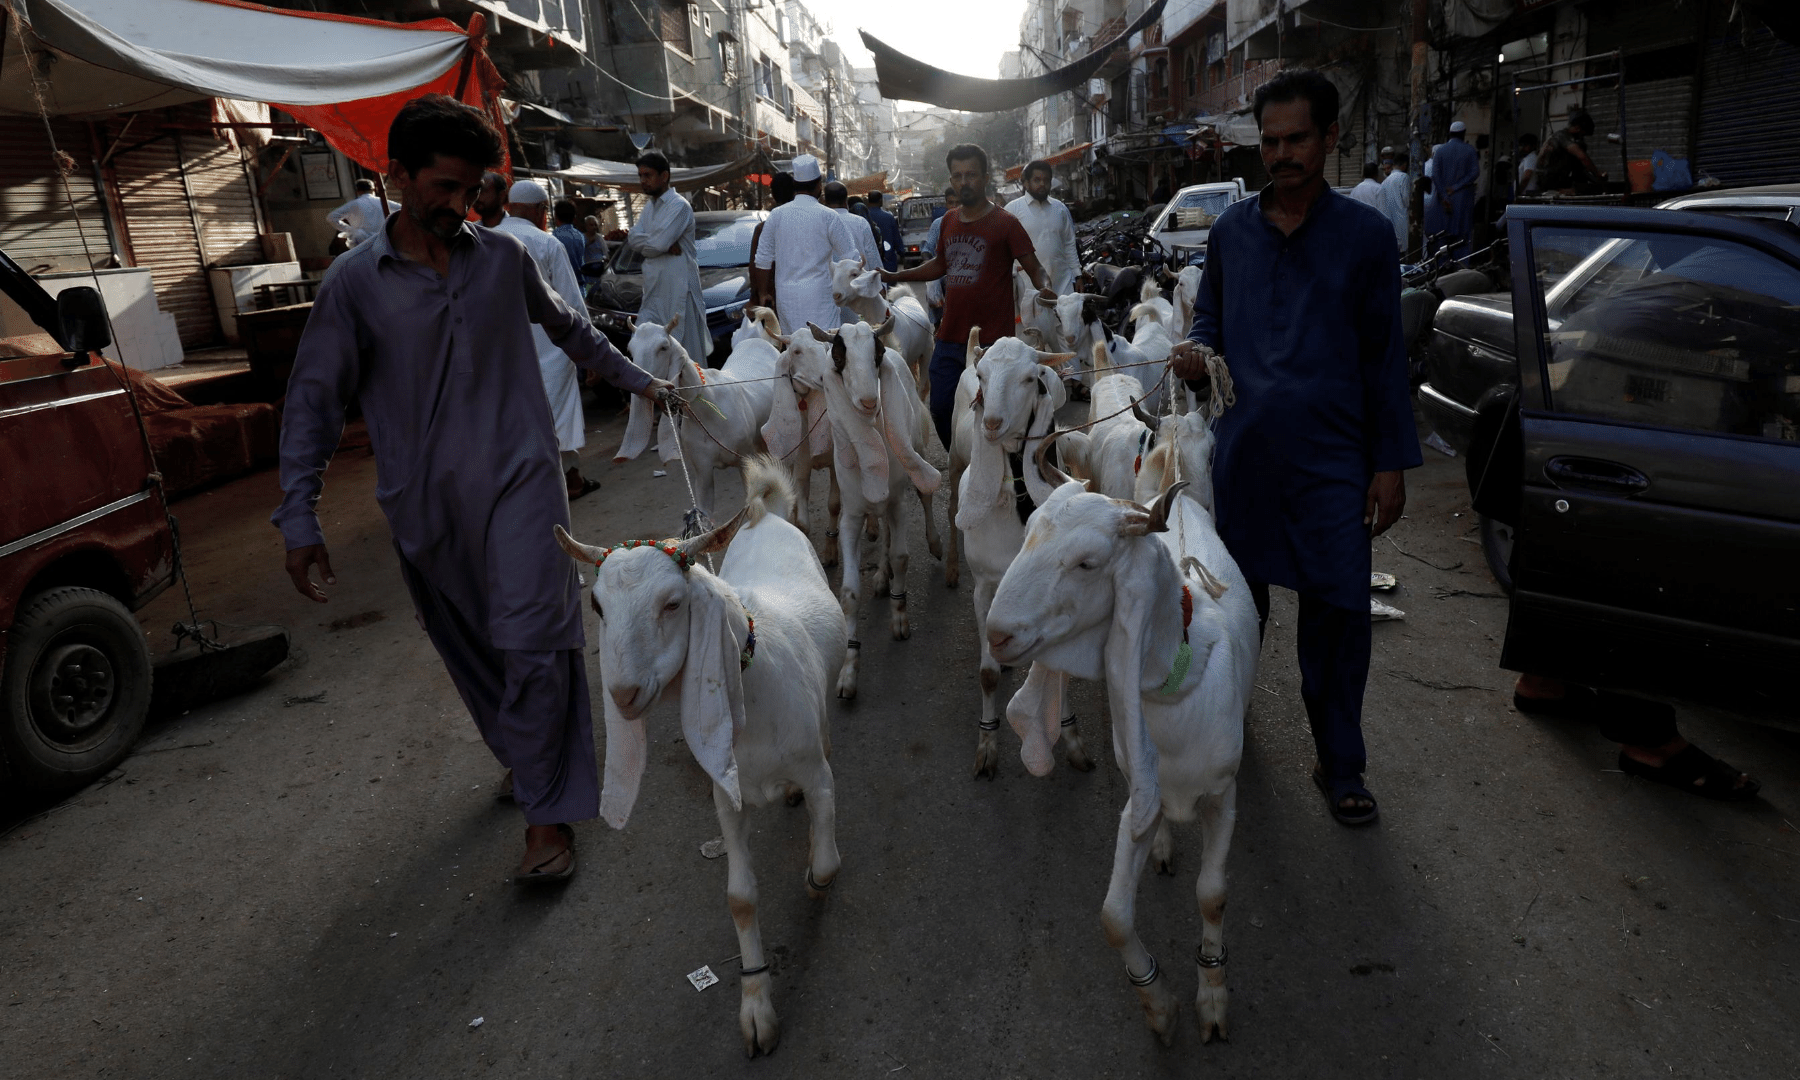 Men lead a pack of goats to be slaughtered in celebration of Eidul Azha in Karachi. — Reuters